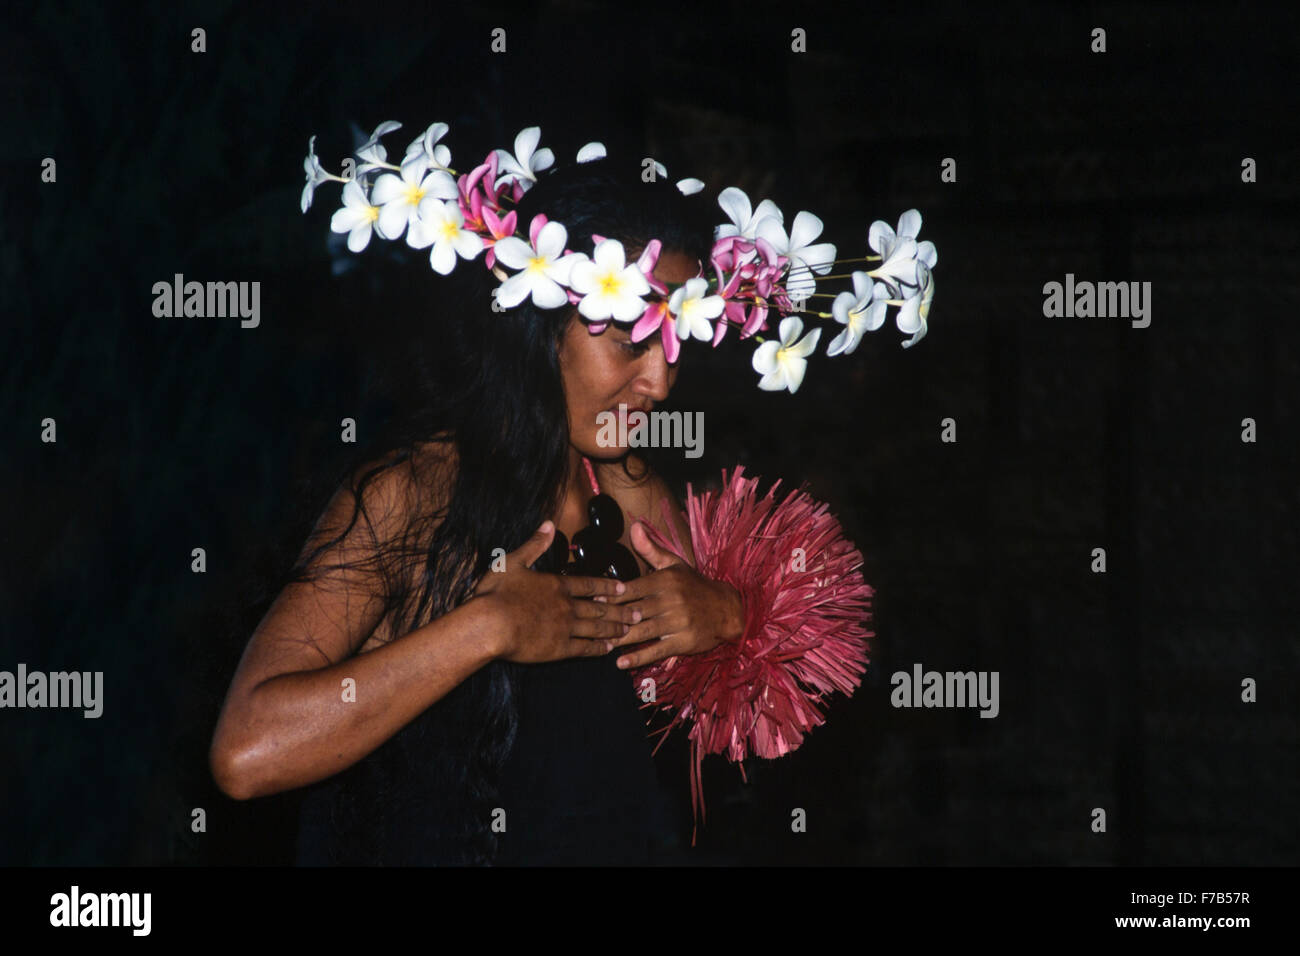 Polynesian hula (hura) dancer wearing frangipani flower headdress at the Cook Island Cultural Village Stock Photo